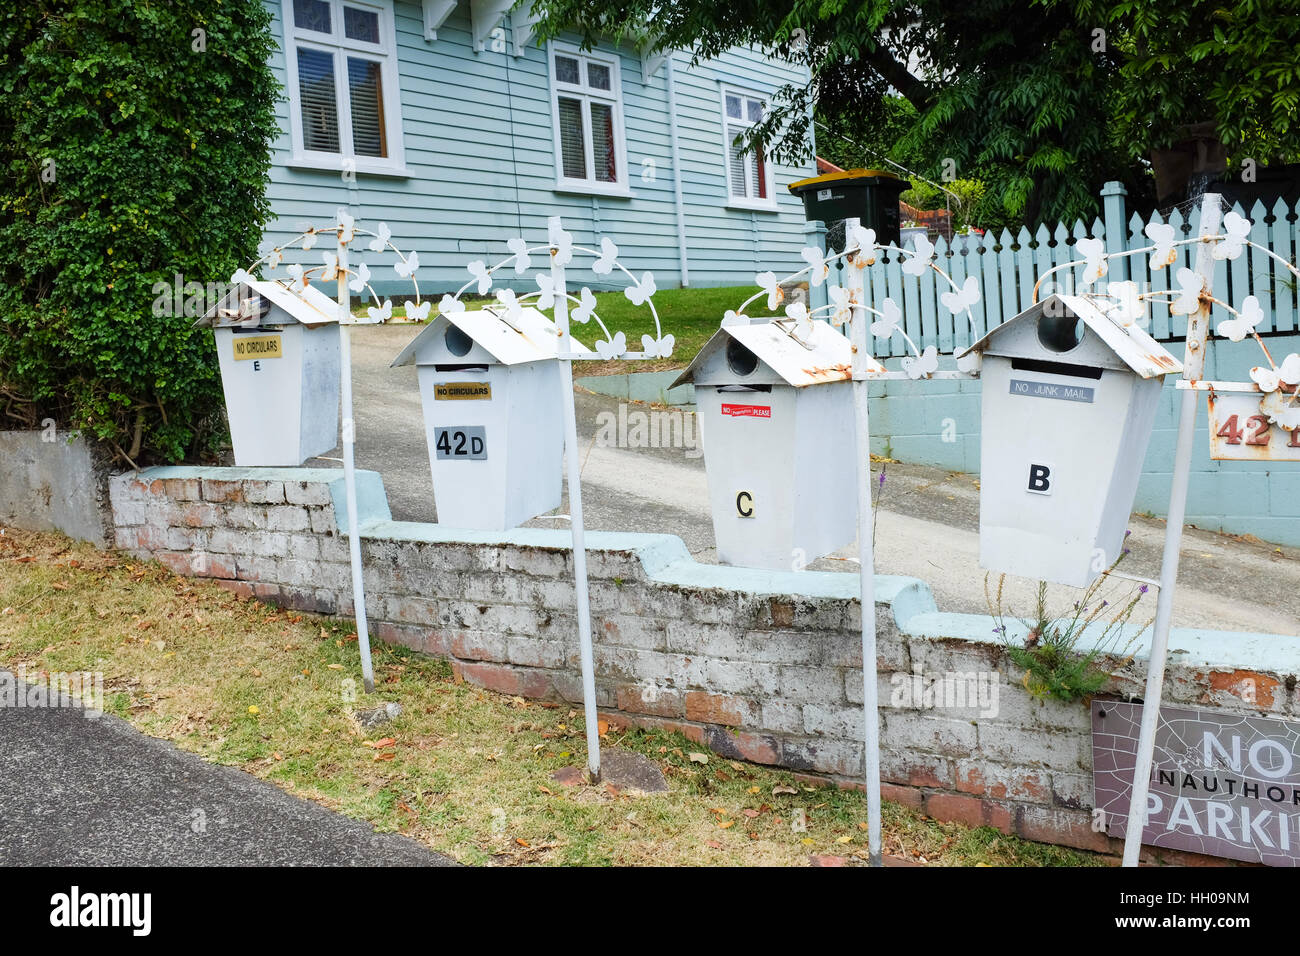 Mailboxes in New Zealand. - Stock Image